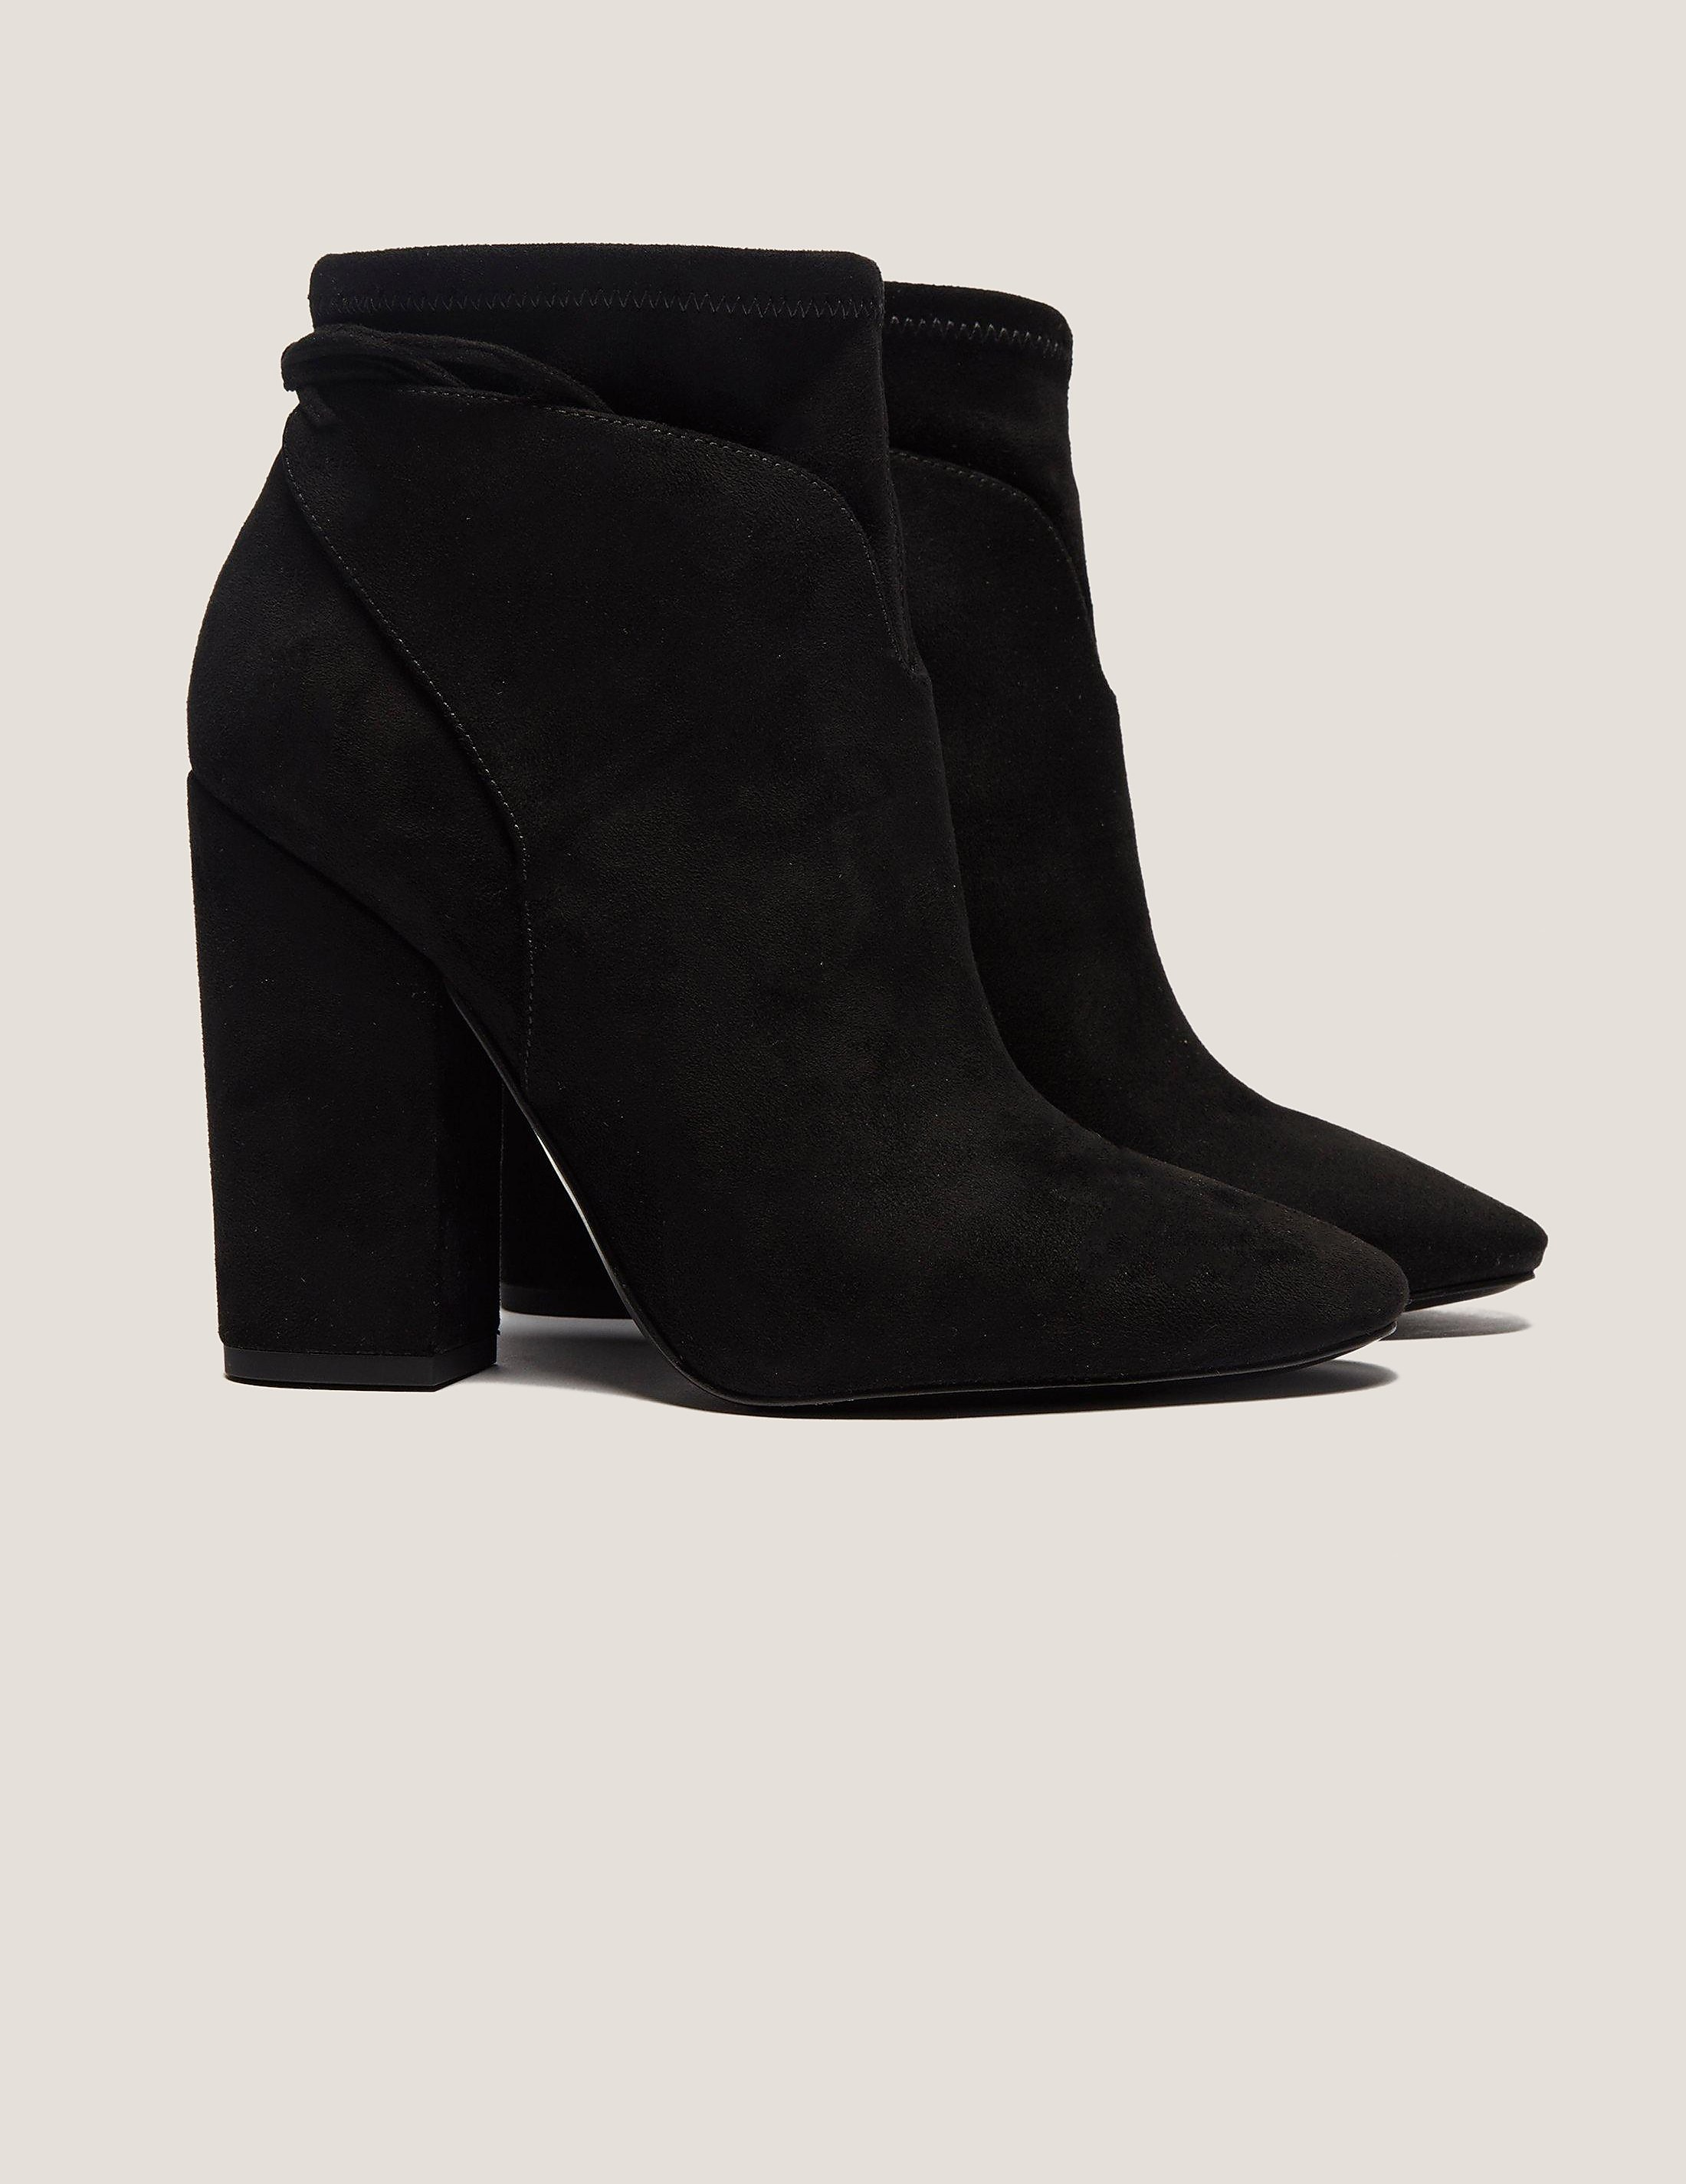 Kendall & Kylie Suede Tie Ankle Boot